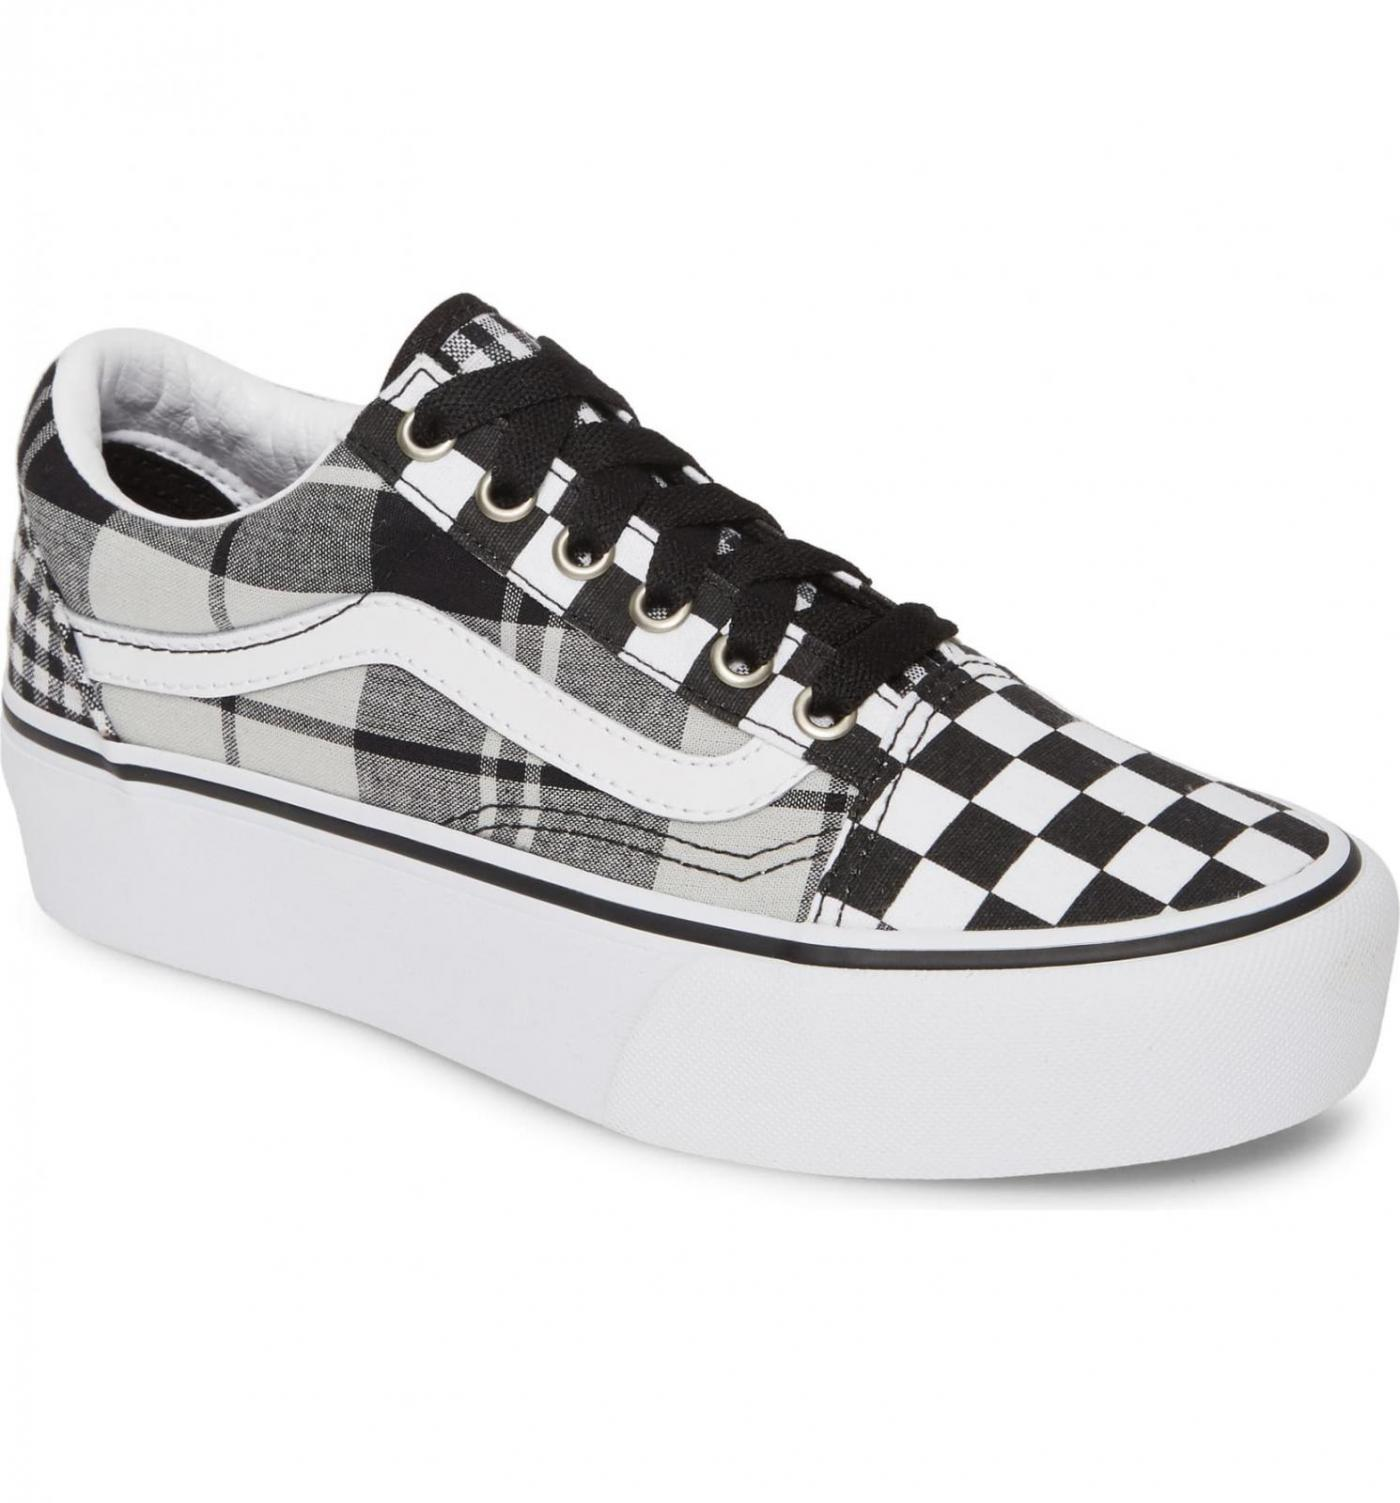 Vans Plaid Checkerboard Era Platform Sneaker